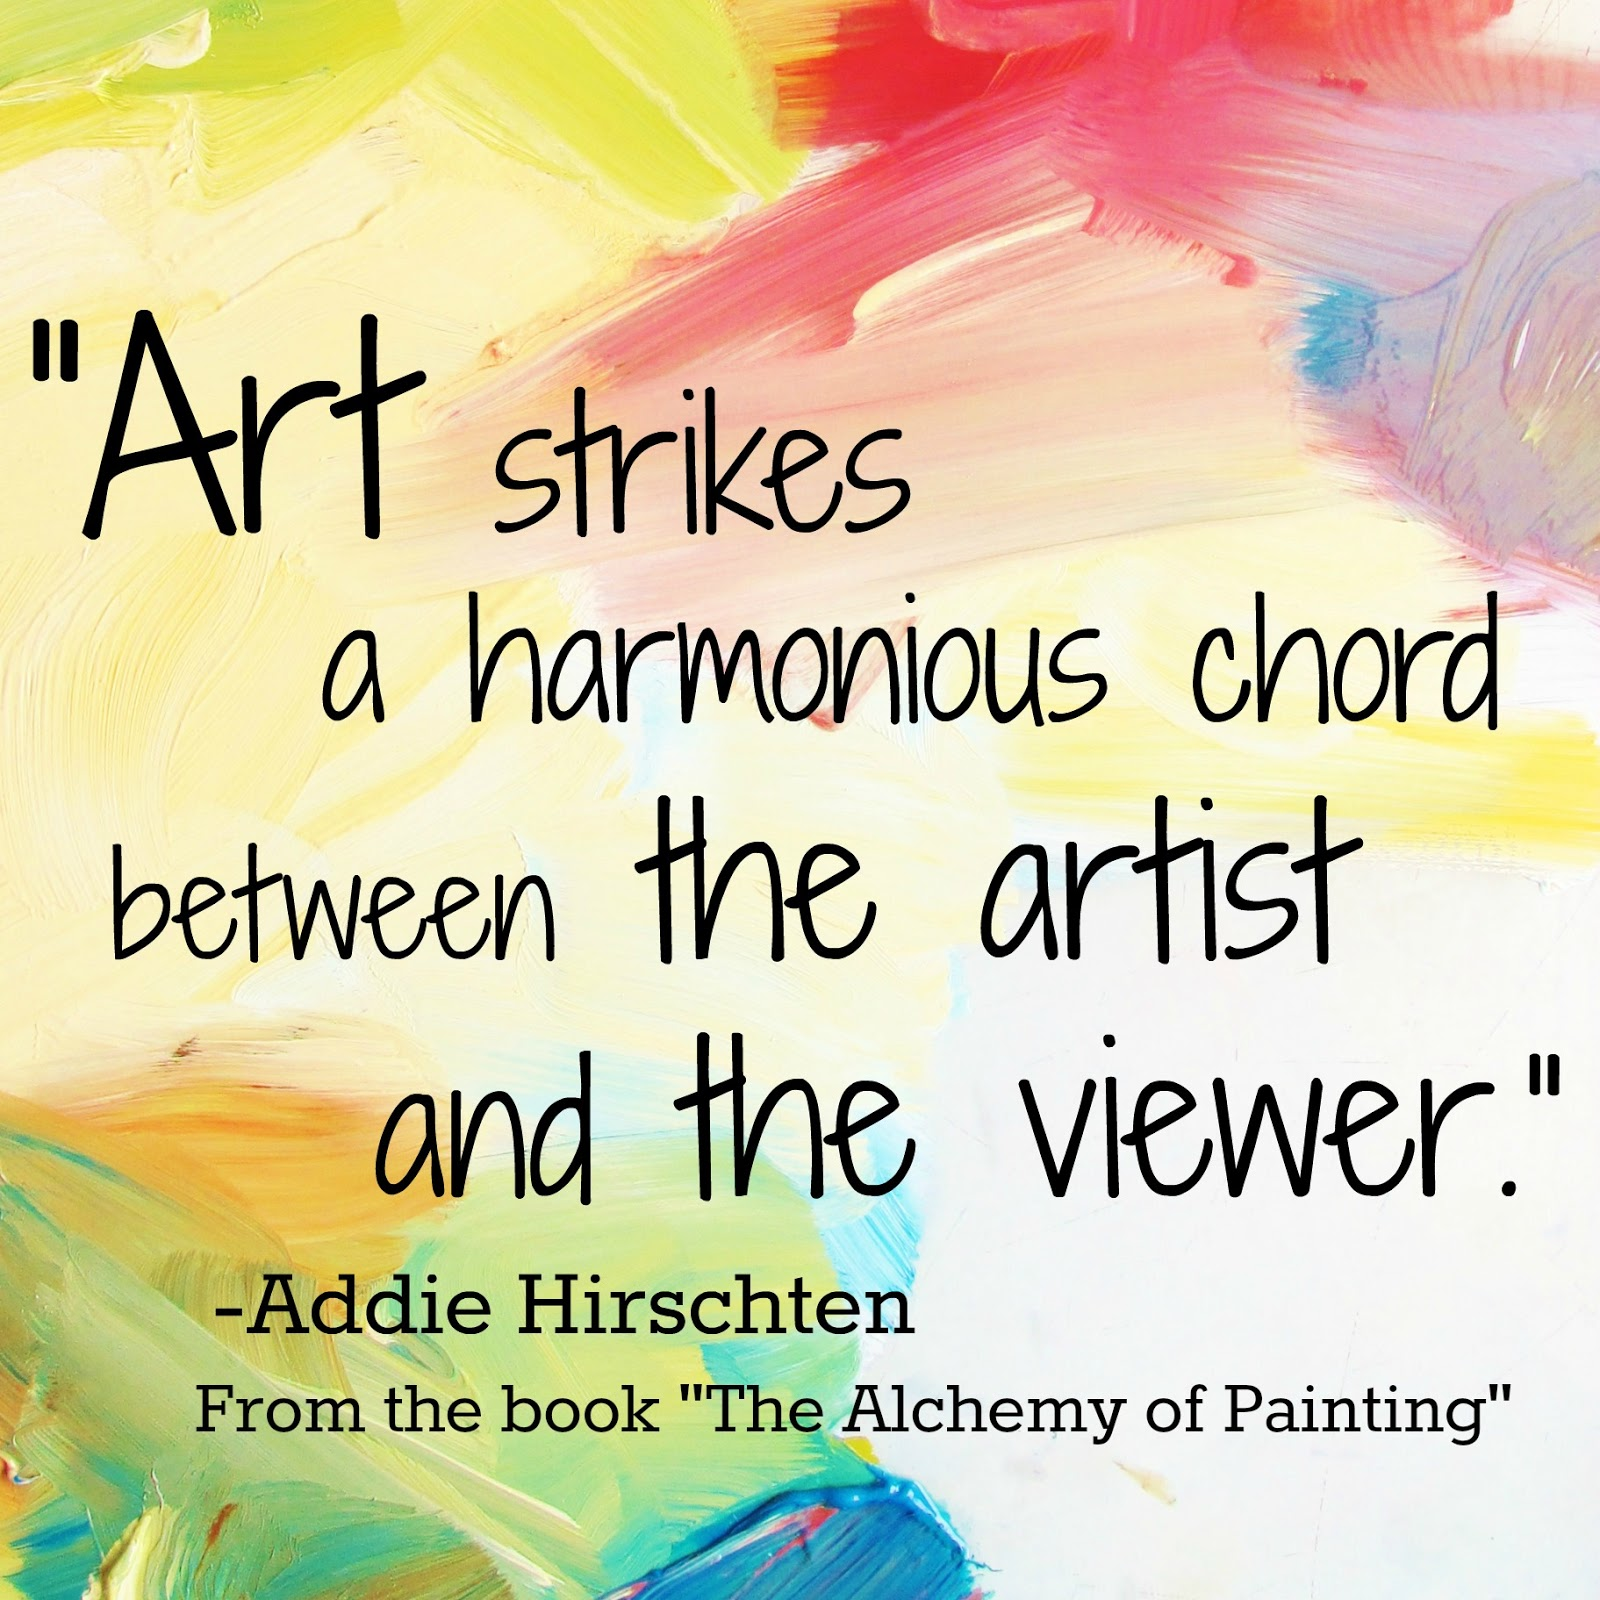 www artistaddie com: Alchemy of Painting Book is available!!!!